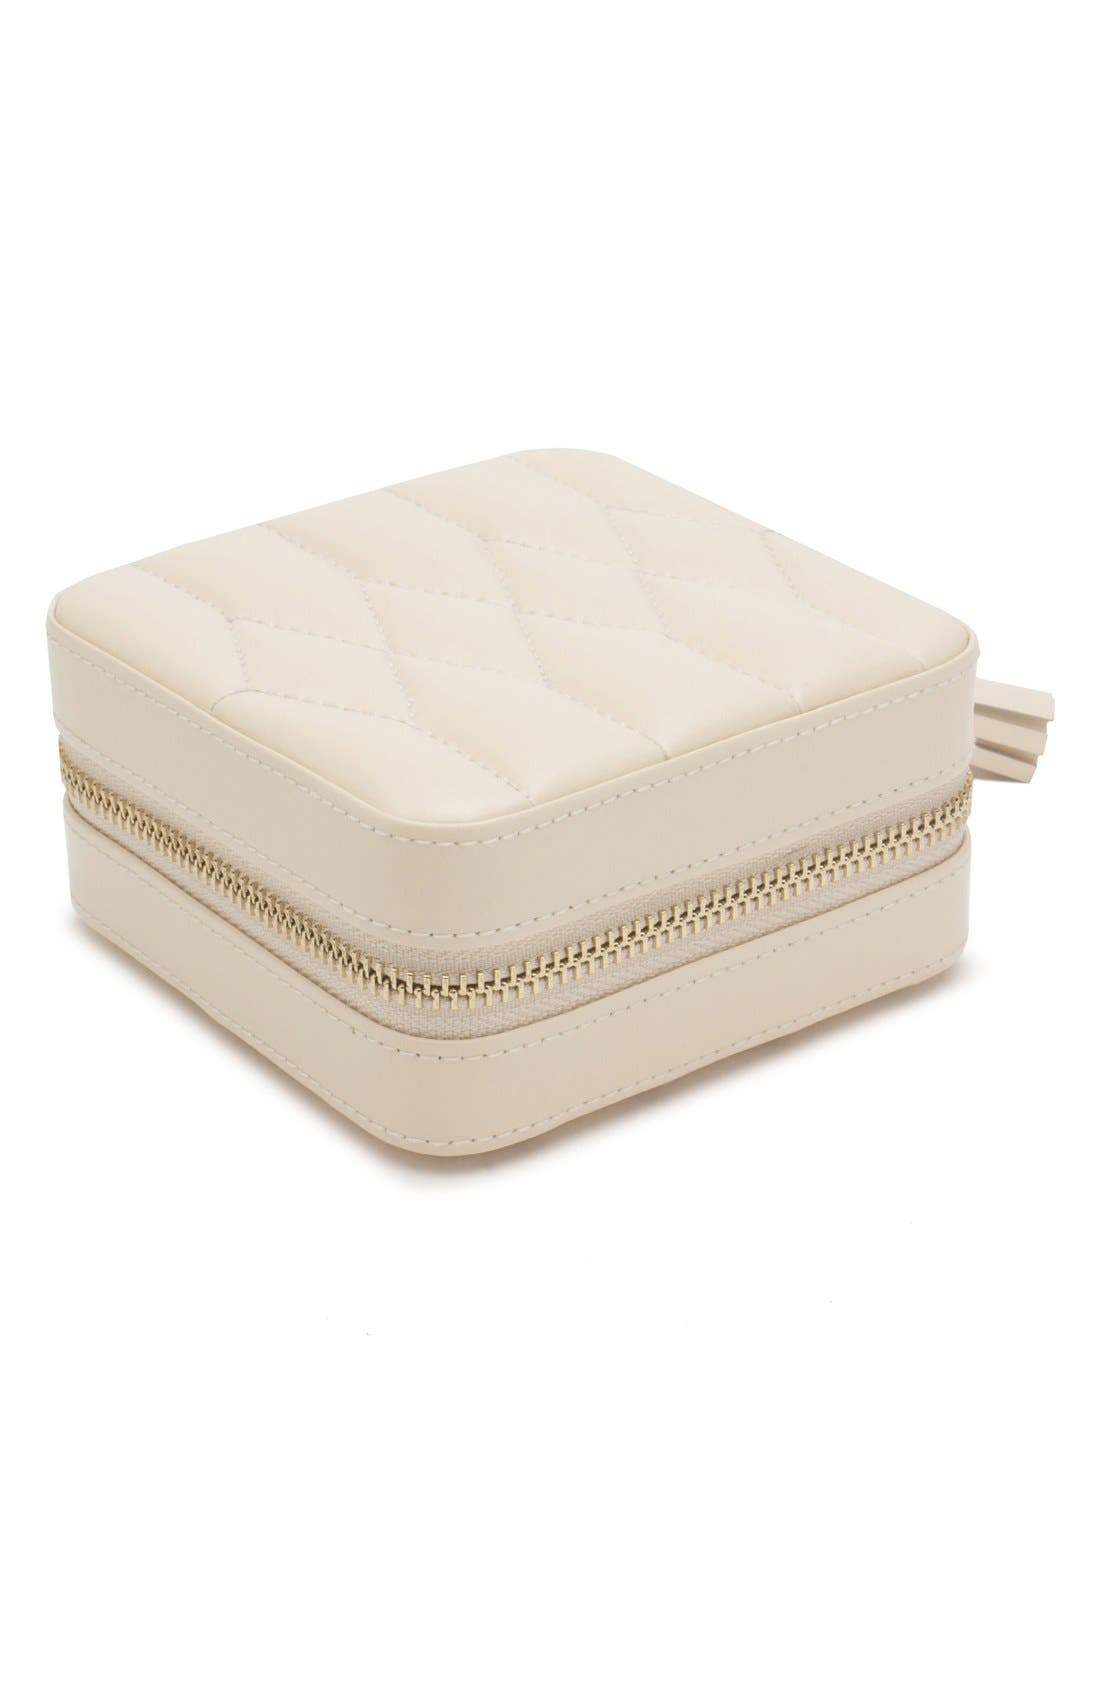 'Caroline' Travel Jewelry Case,                             Main thumbnail 1, color,                             Ivory